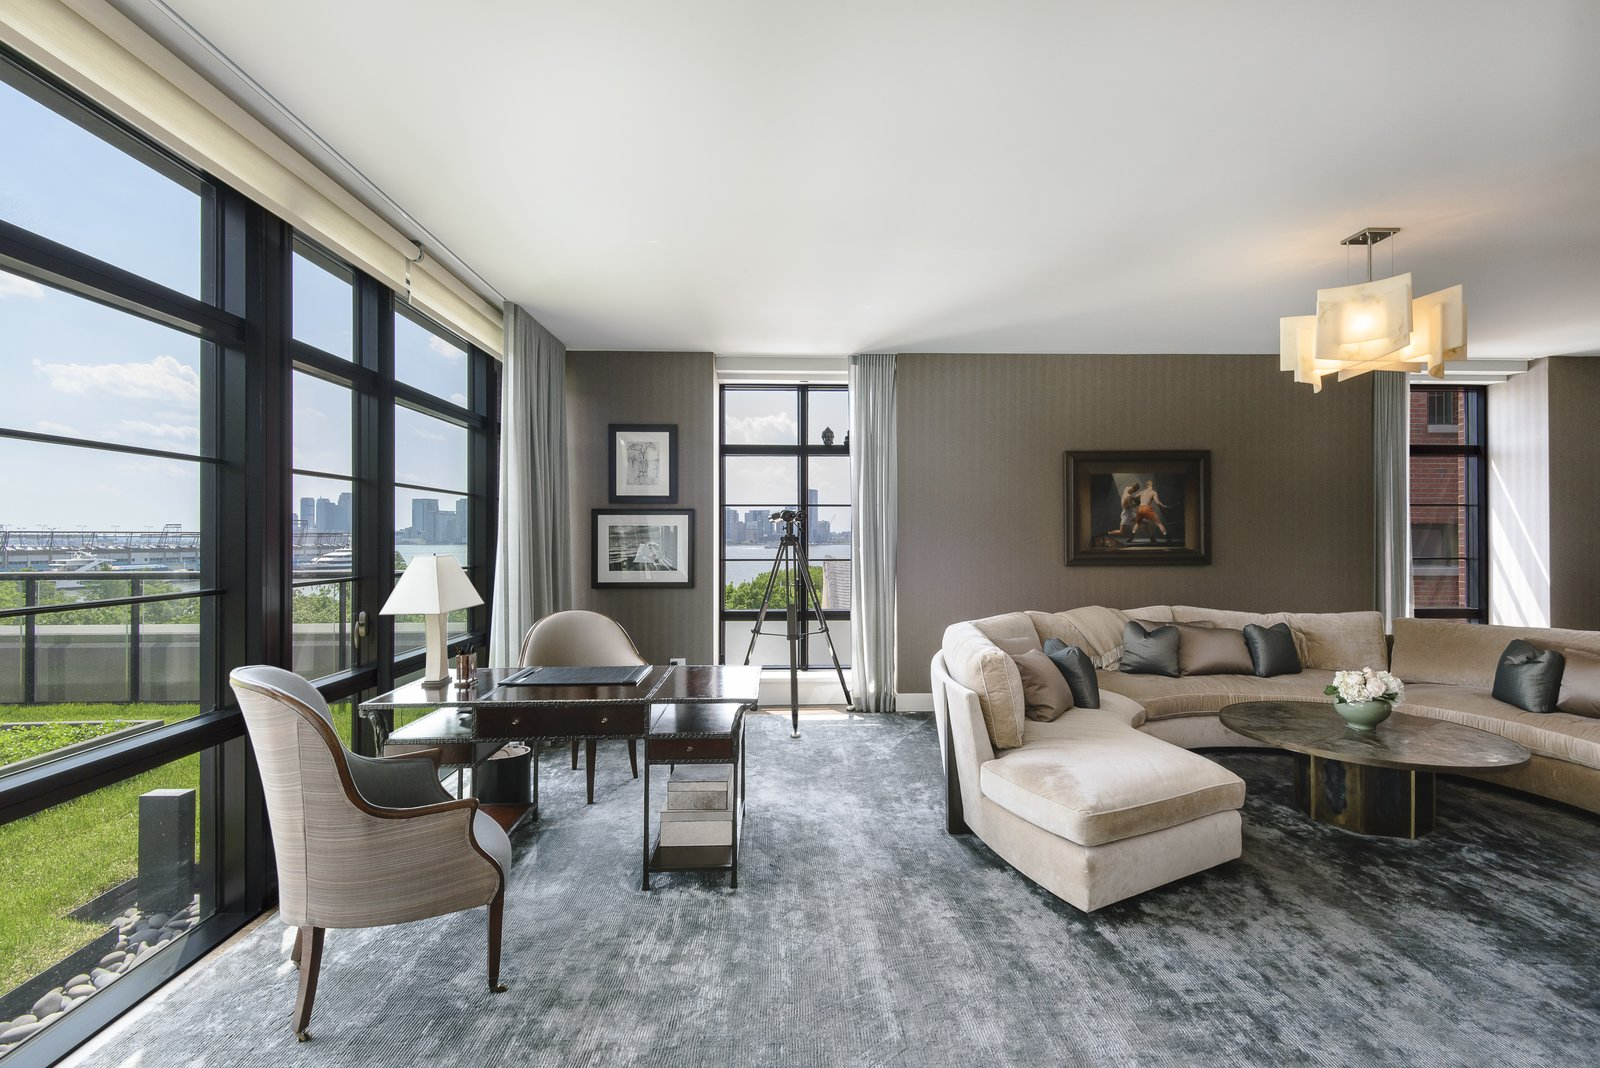 The home features an enormous great room with Hudson River views